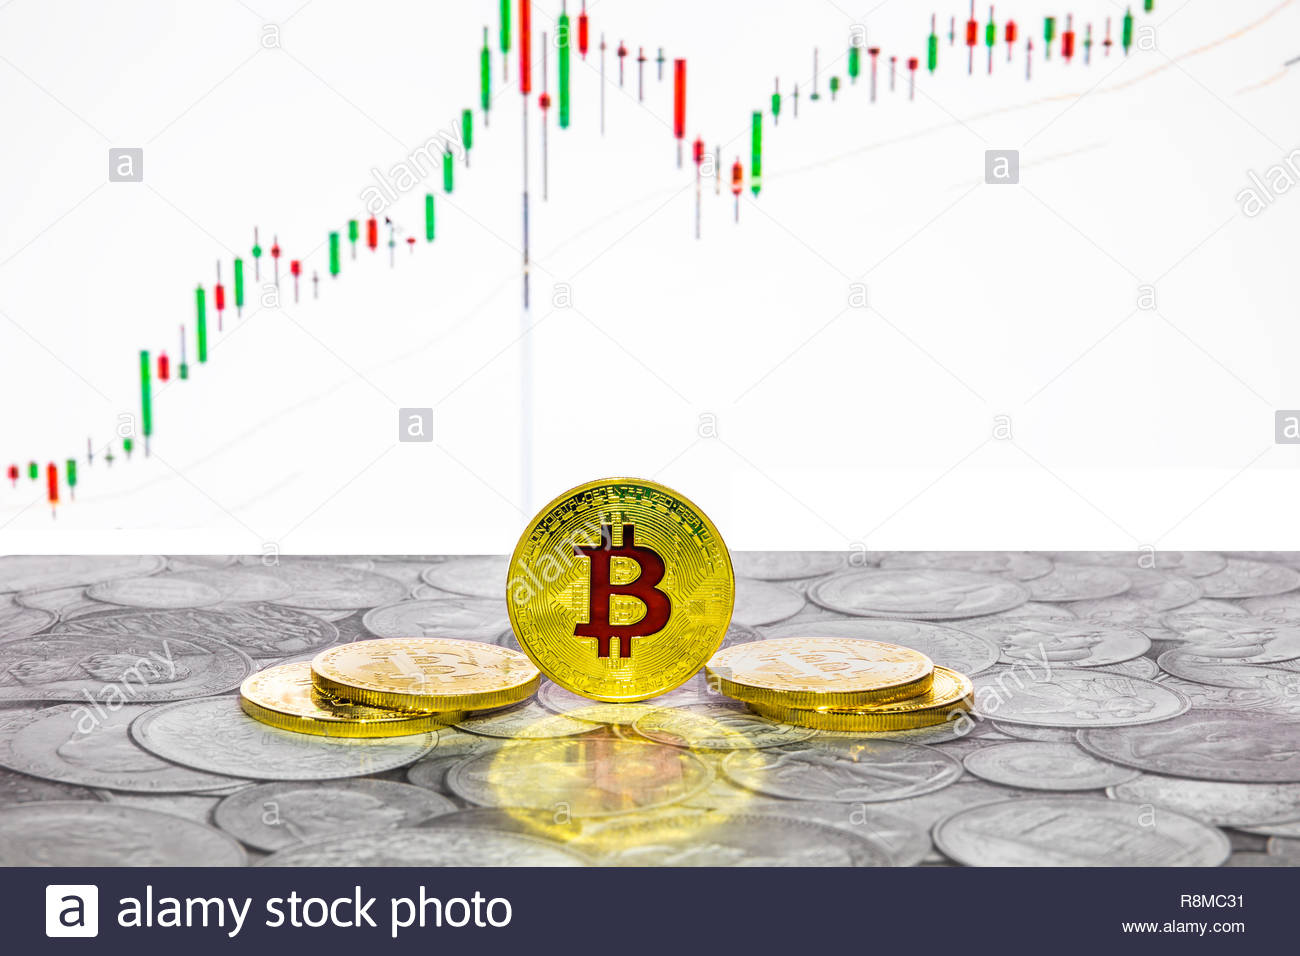 Bitcoin coins with global trading exchange market price chart in the